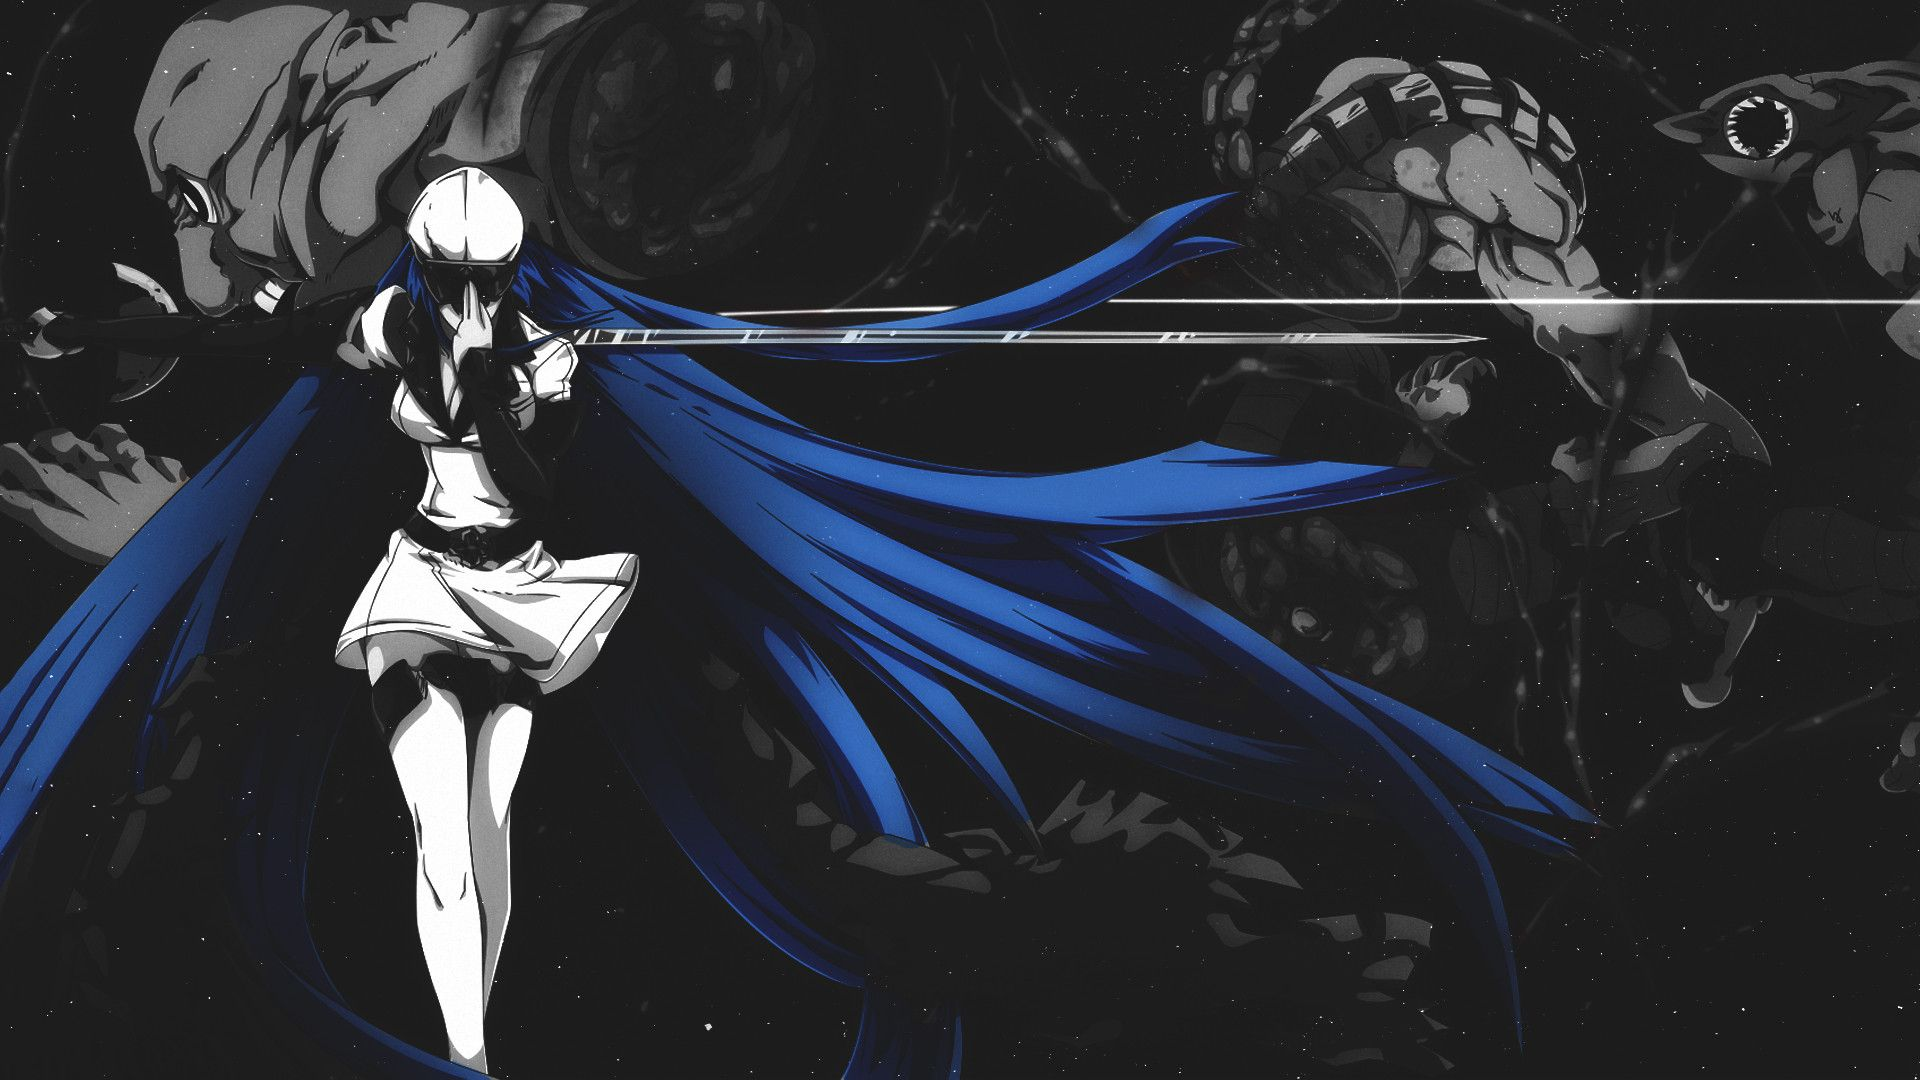 Anime Akame Ga Kill Wallpaper Akame Ga Kill Anime Akame Ga